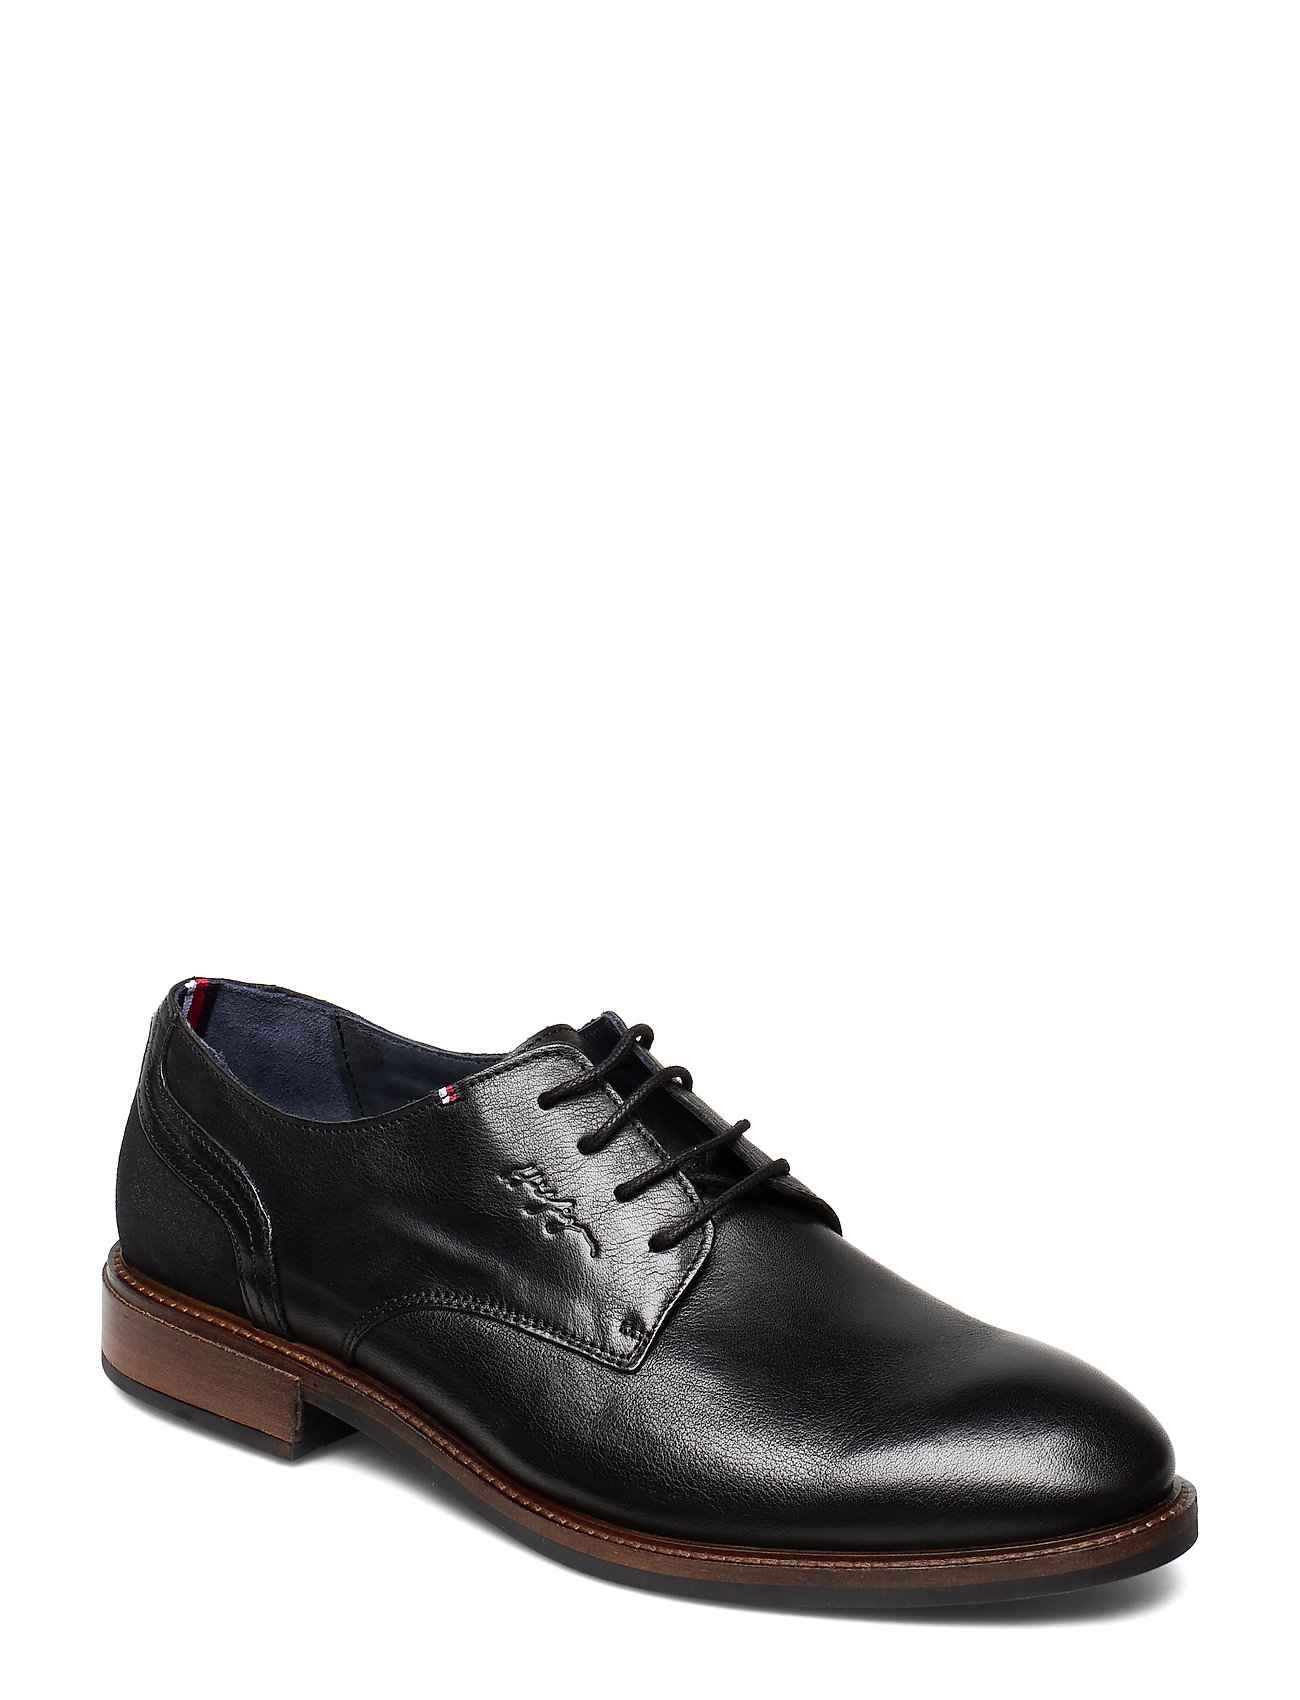 Image of Elevated Leather Mix Shoe Shoes Business Laced Shoes Sort Tommy Hilfiger (3248024035)